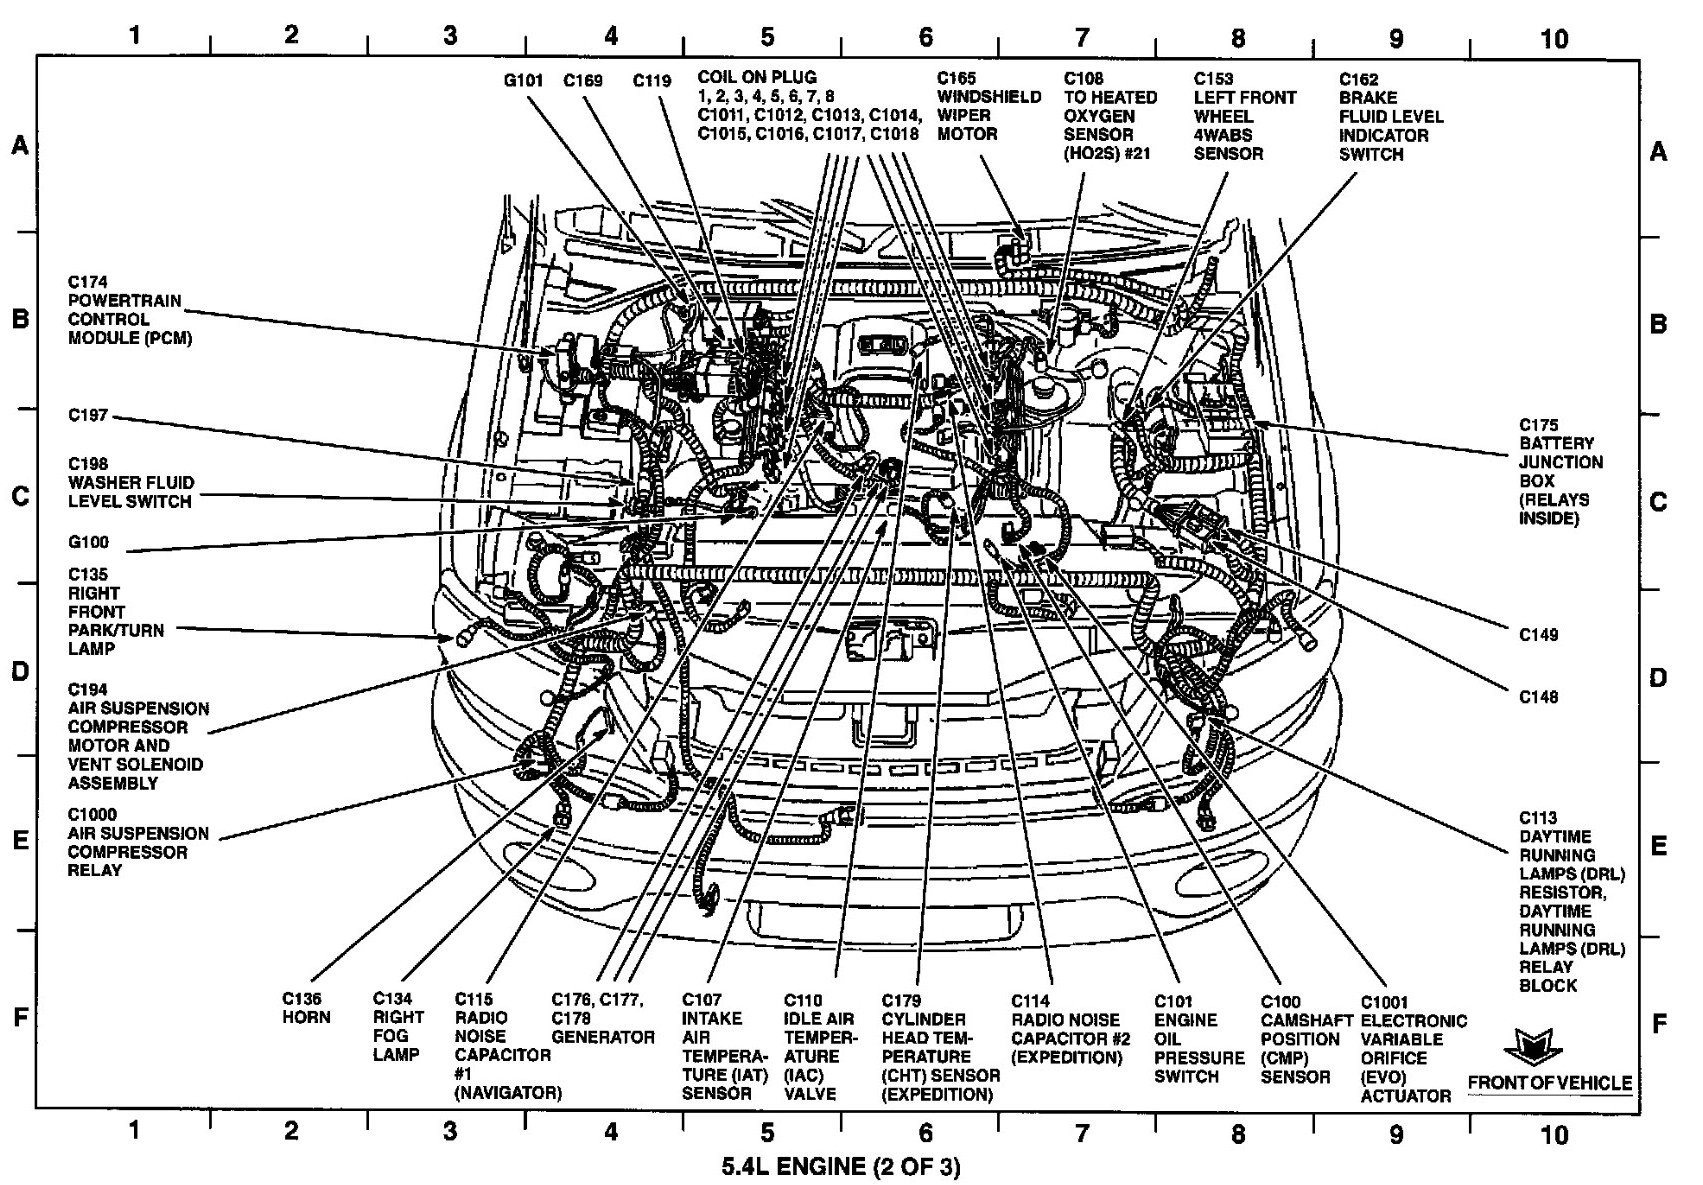 hight resolution of 1996 mustang engine diagram data wiring diagram 1996 mustang engine diagram